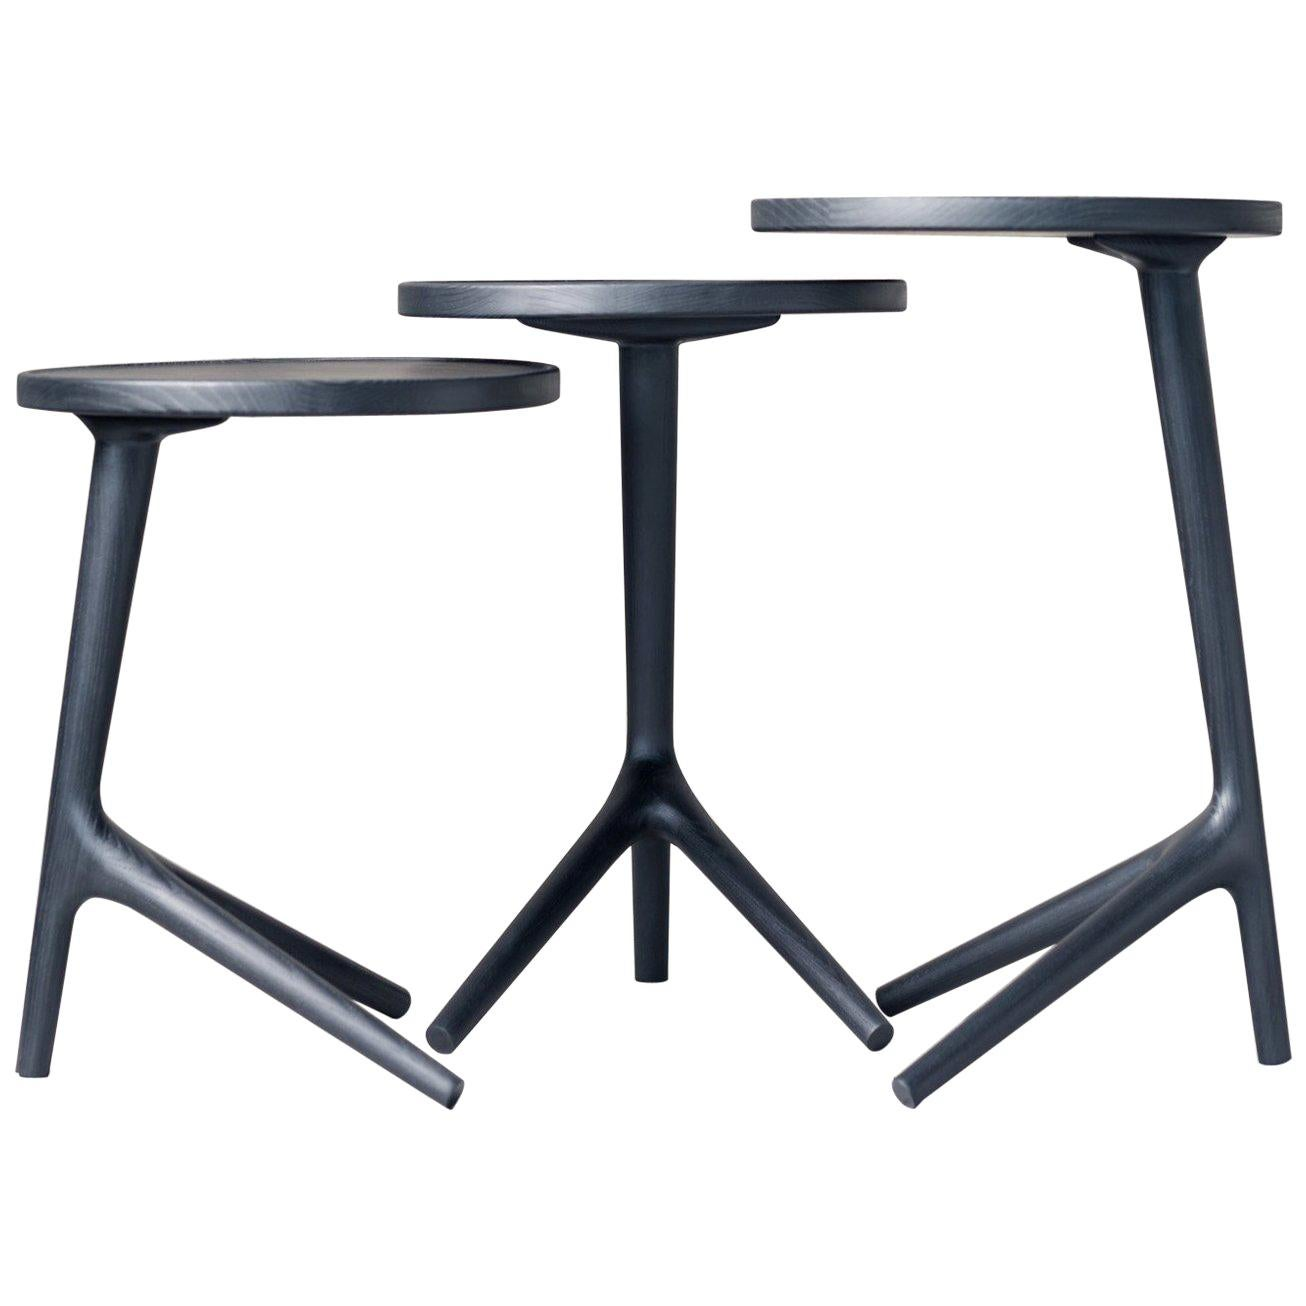 Tripod Table in Charcoal Stained Ash Wood - Accent Nesting Table for Living Room